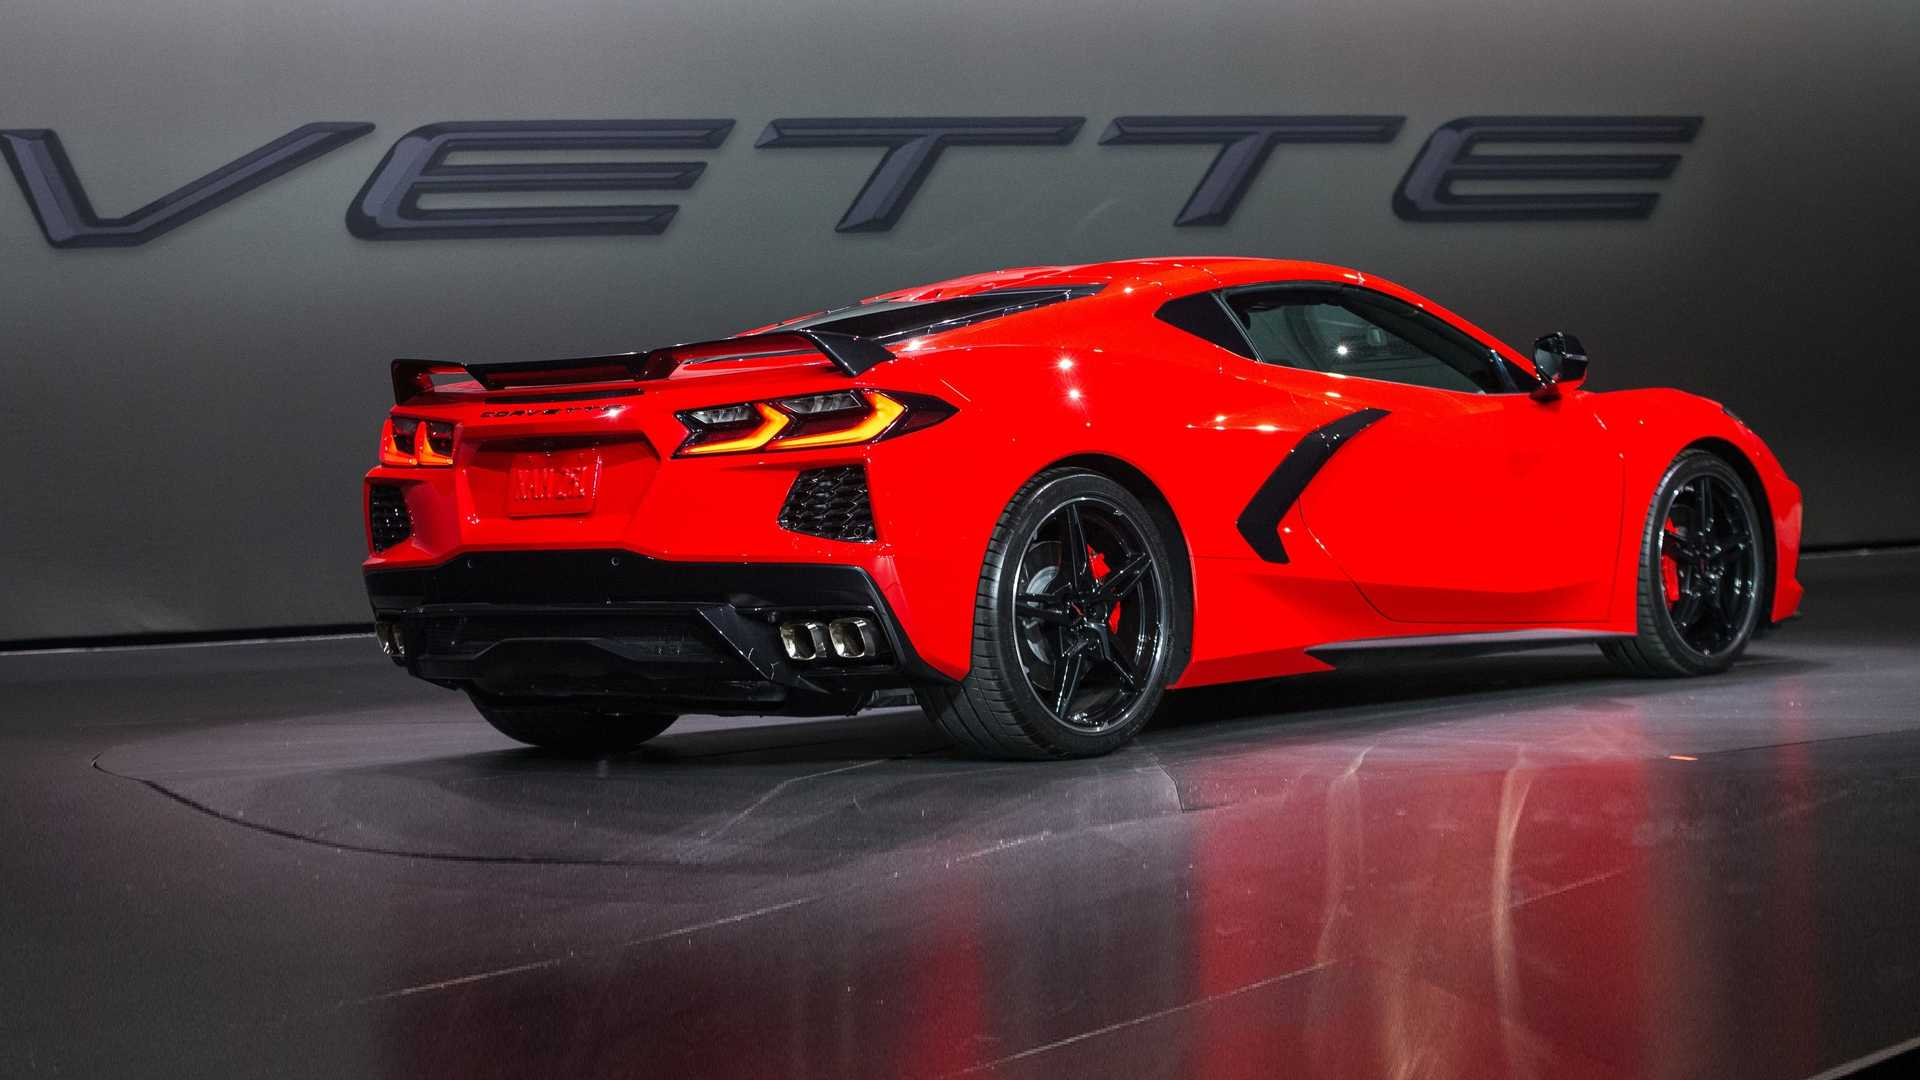 2020-chevrolet-corvette-stingray.jpg